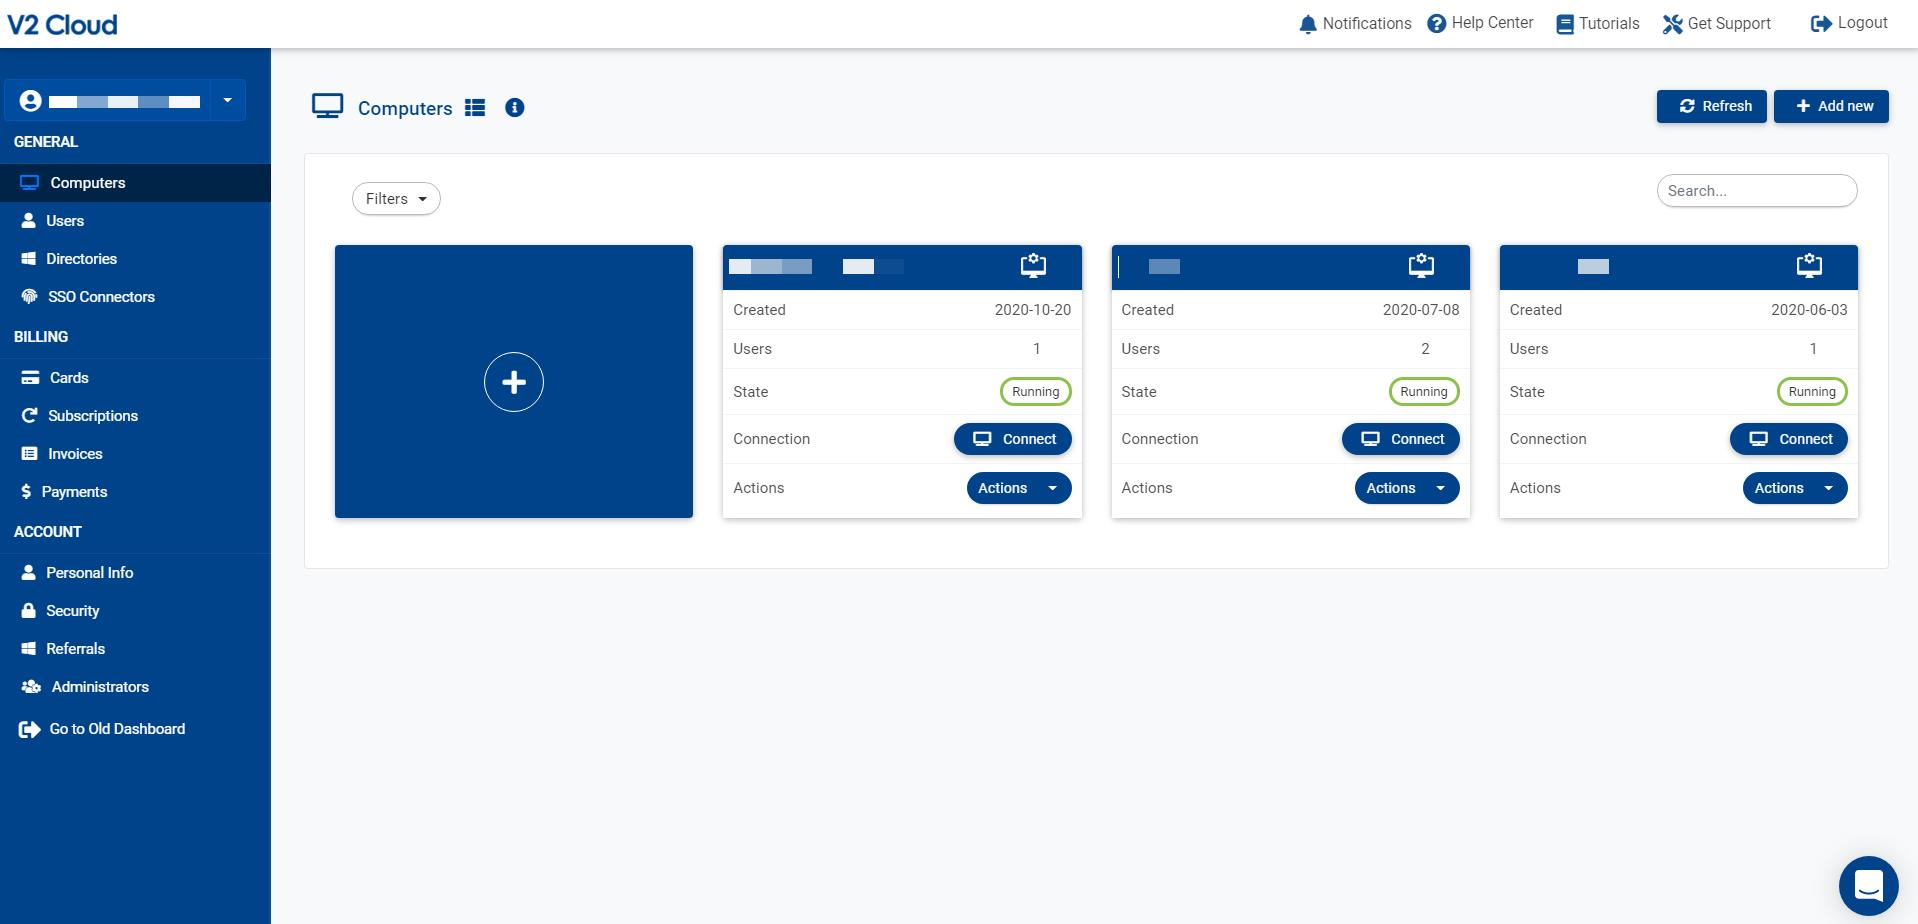 This is where you managed your cloud computers, billing, cybersecurity & administrators. The dashboard enables you to oversee your cloud infrastructure.